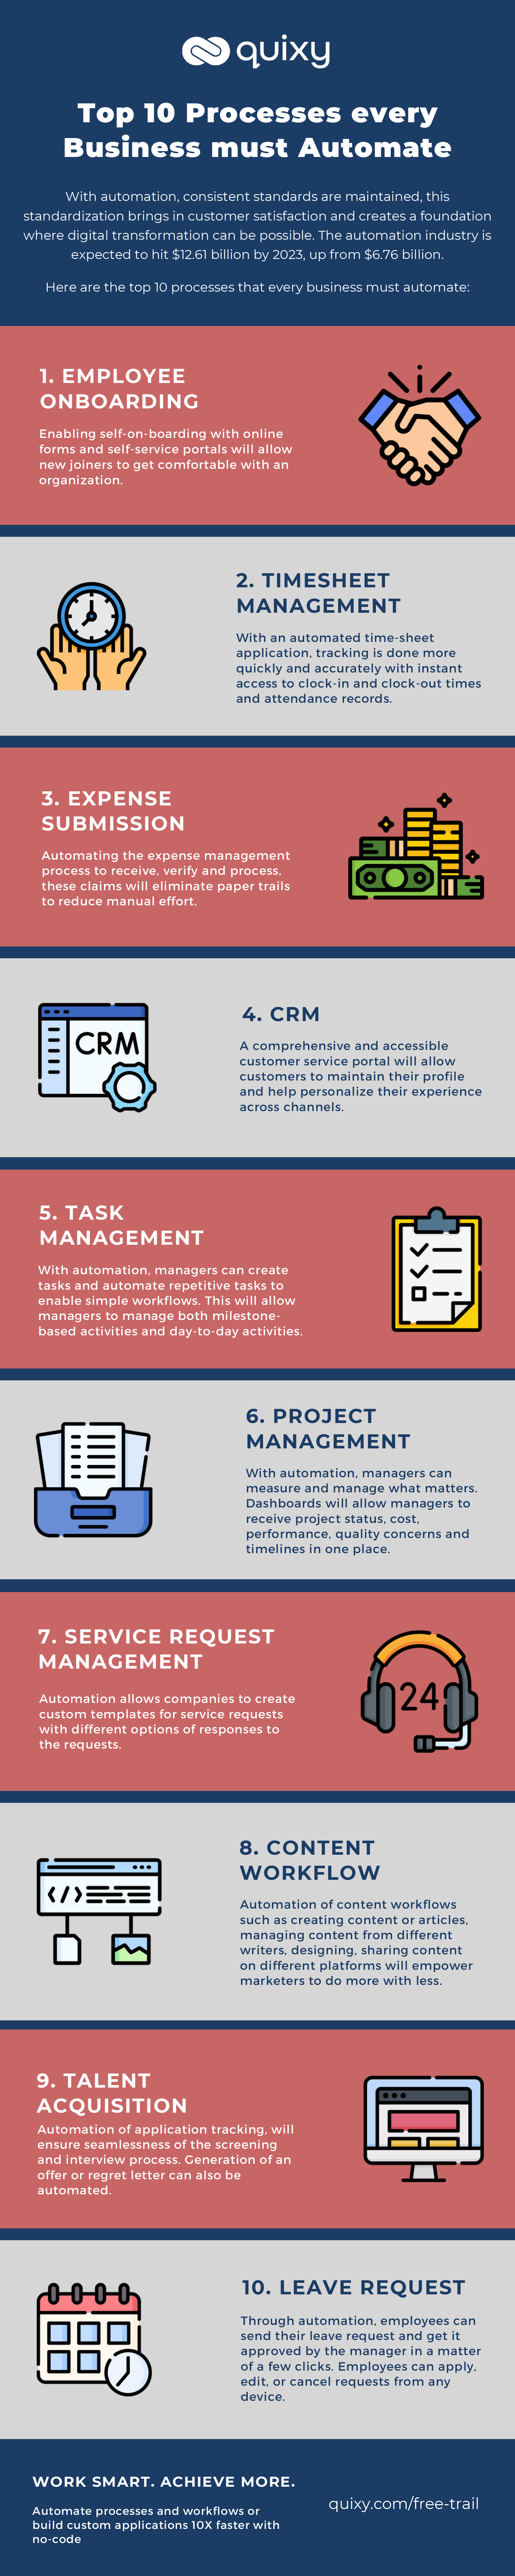 Automation is a stepping stone to digital transformation and gives clarity to business processes. Here are the top 10 processes every business must automate.